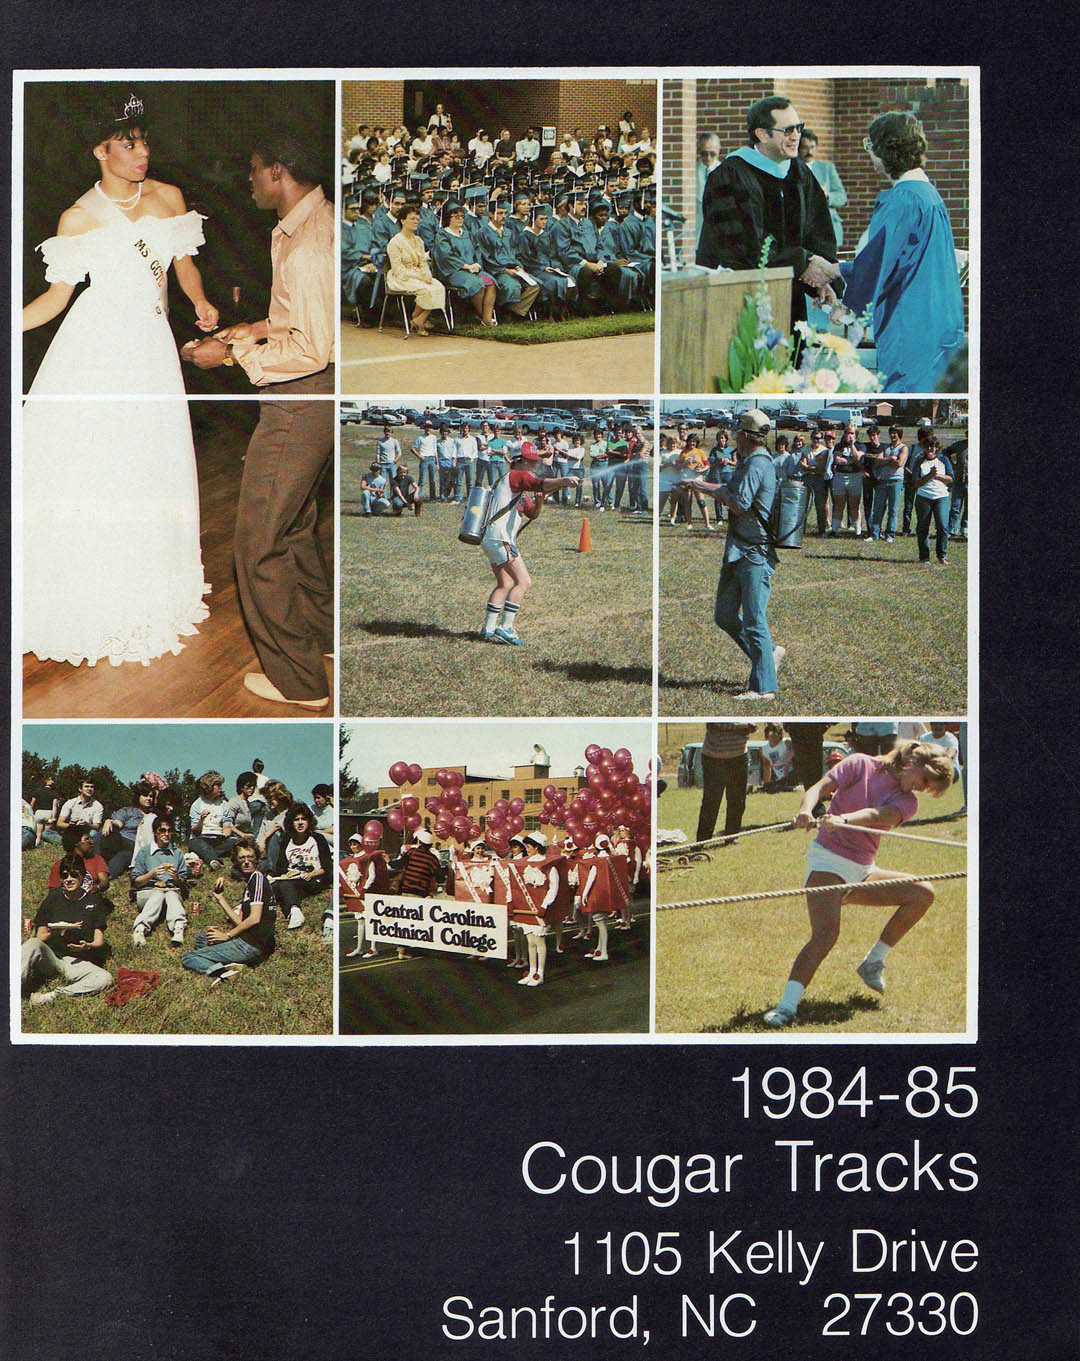 CCCC yearbooks, history online